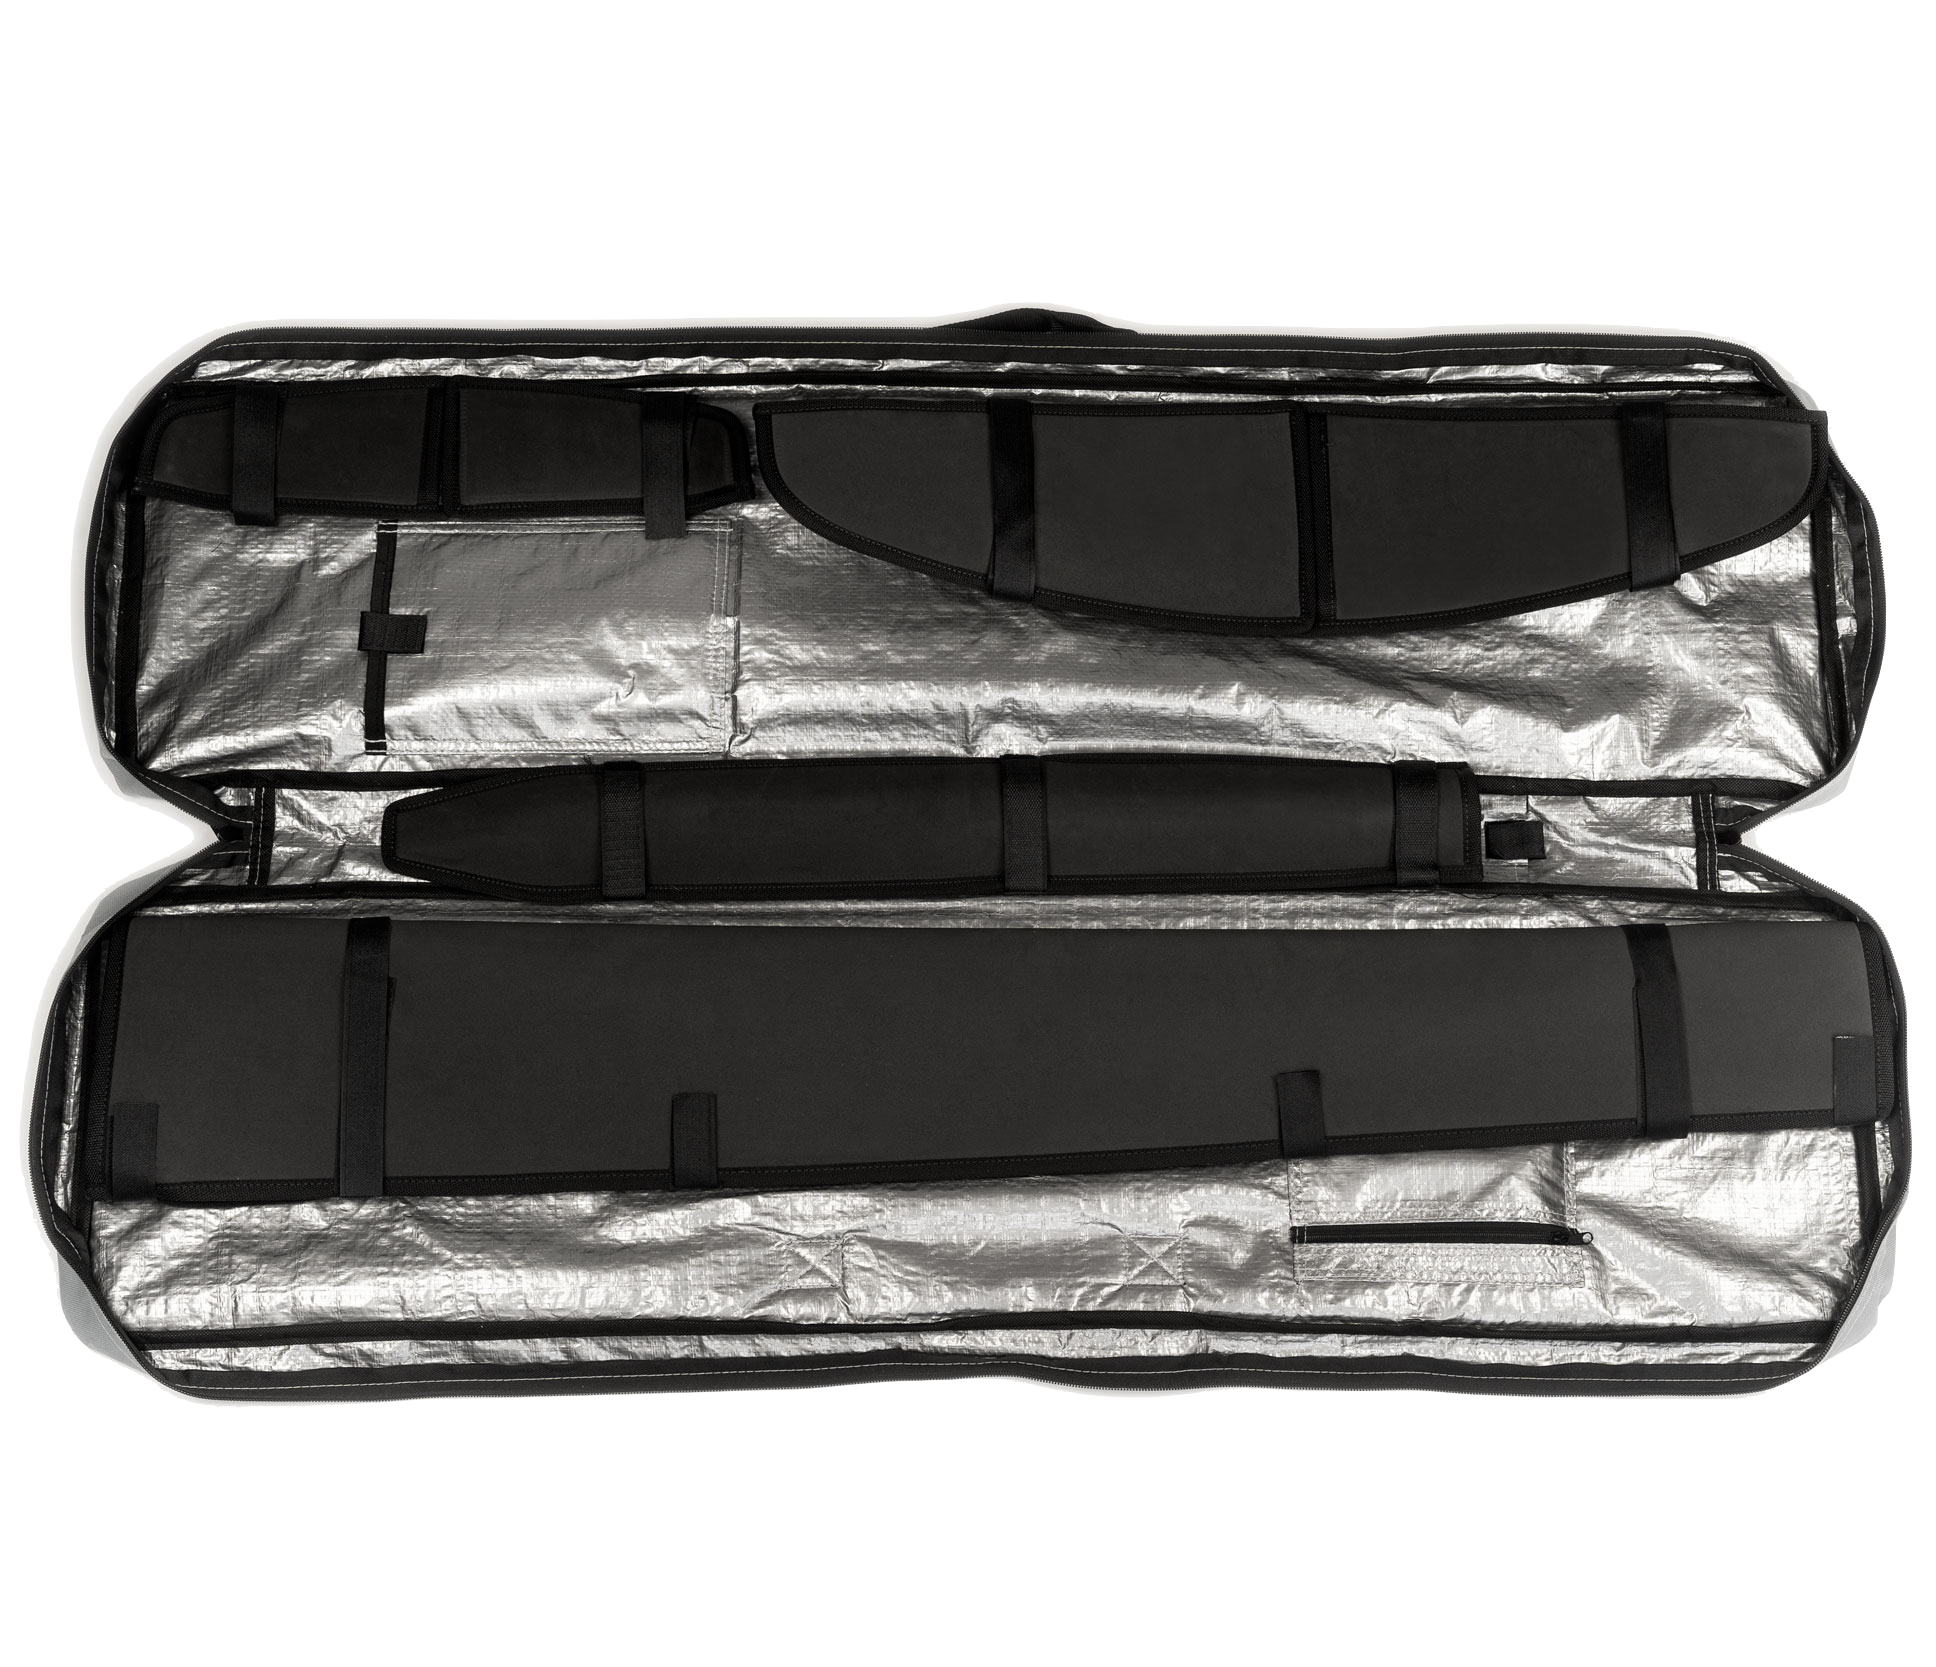 Foil Bag L - Open View